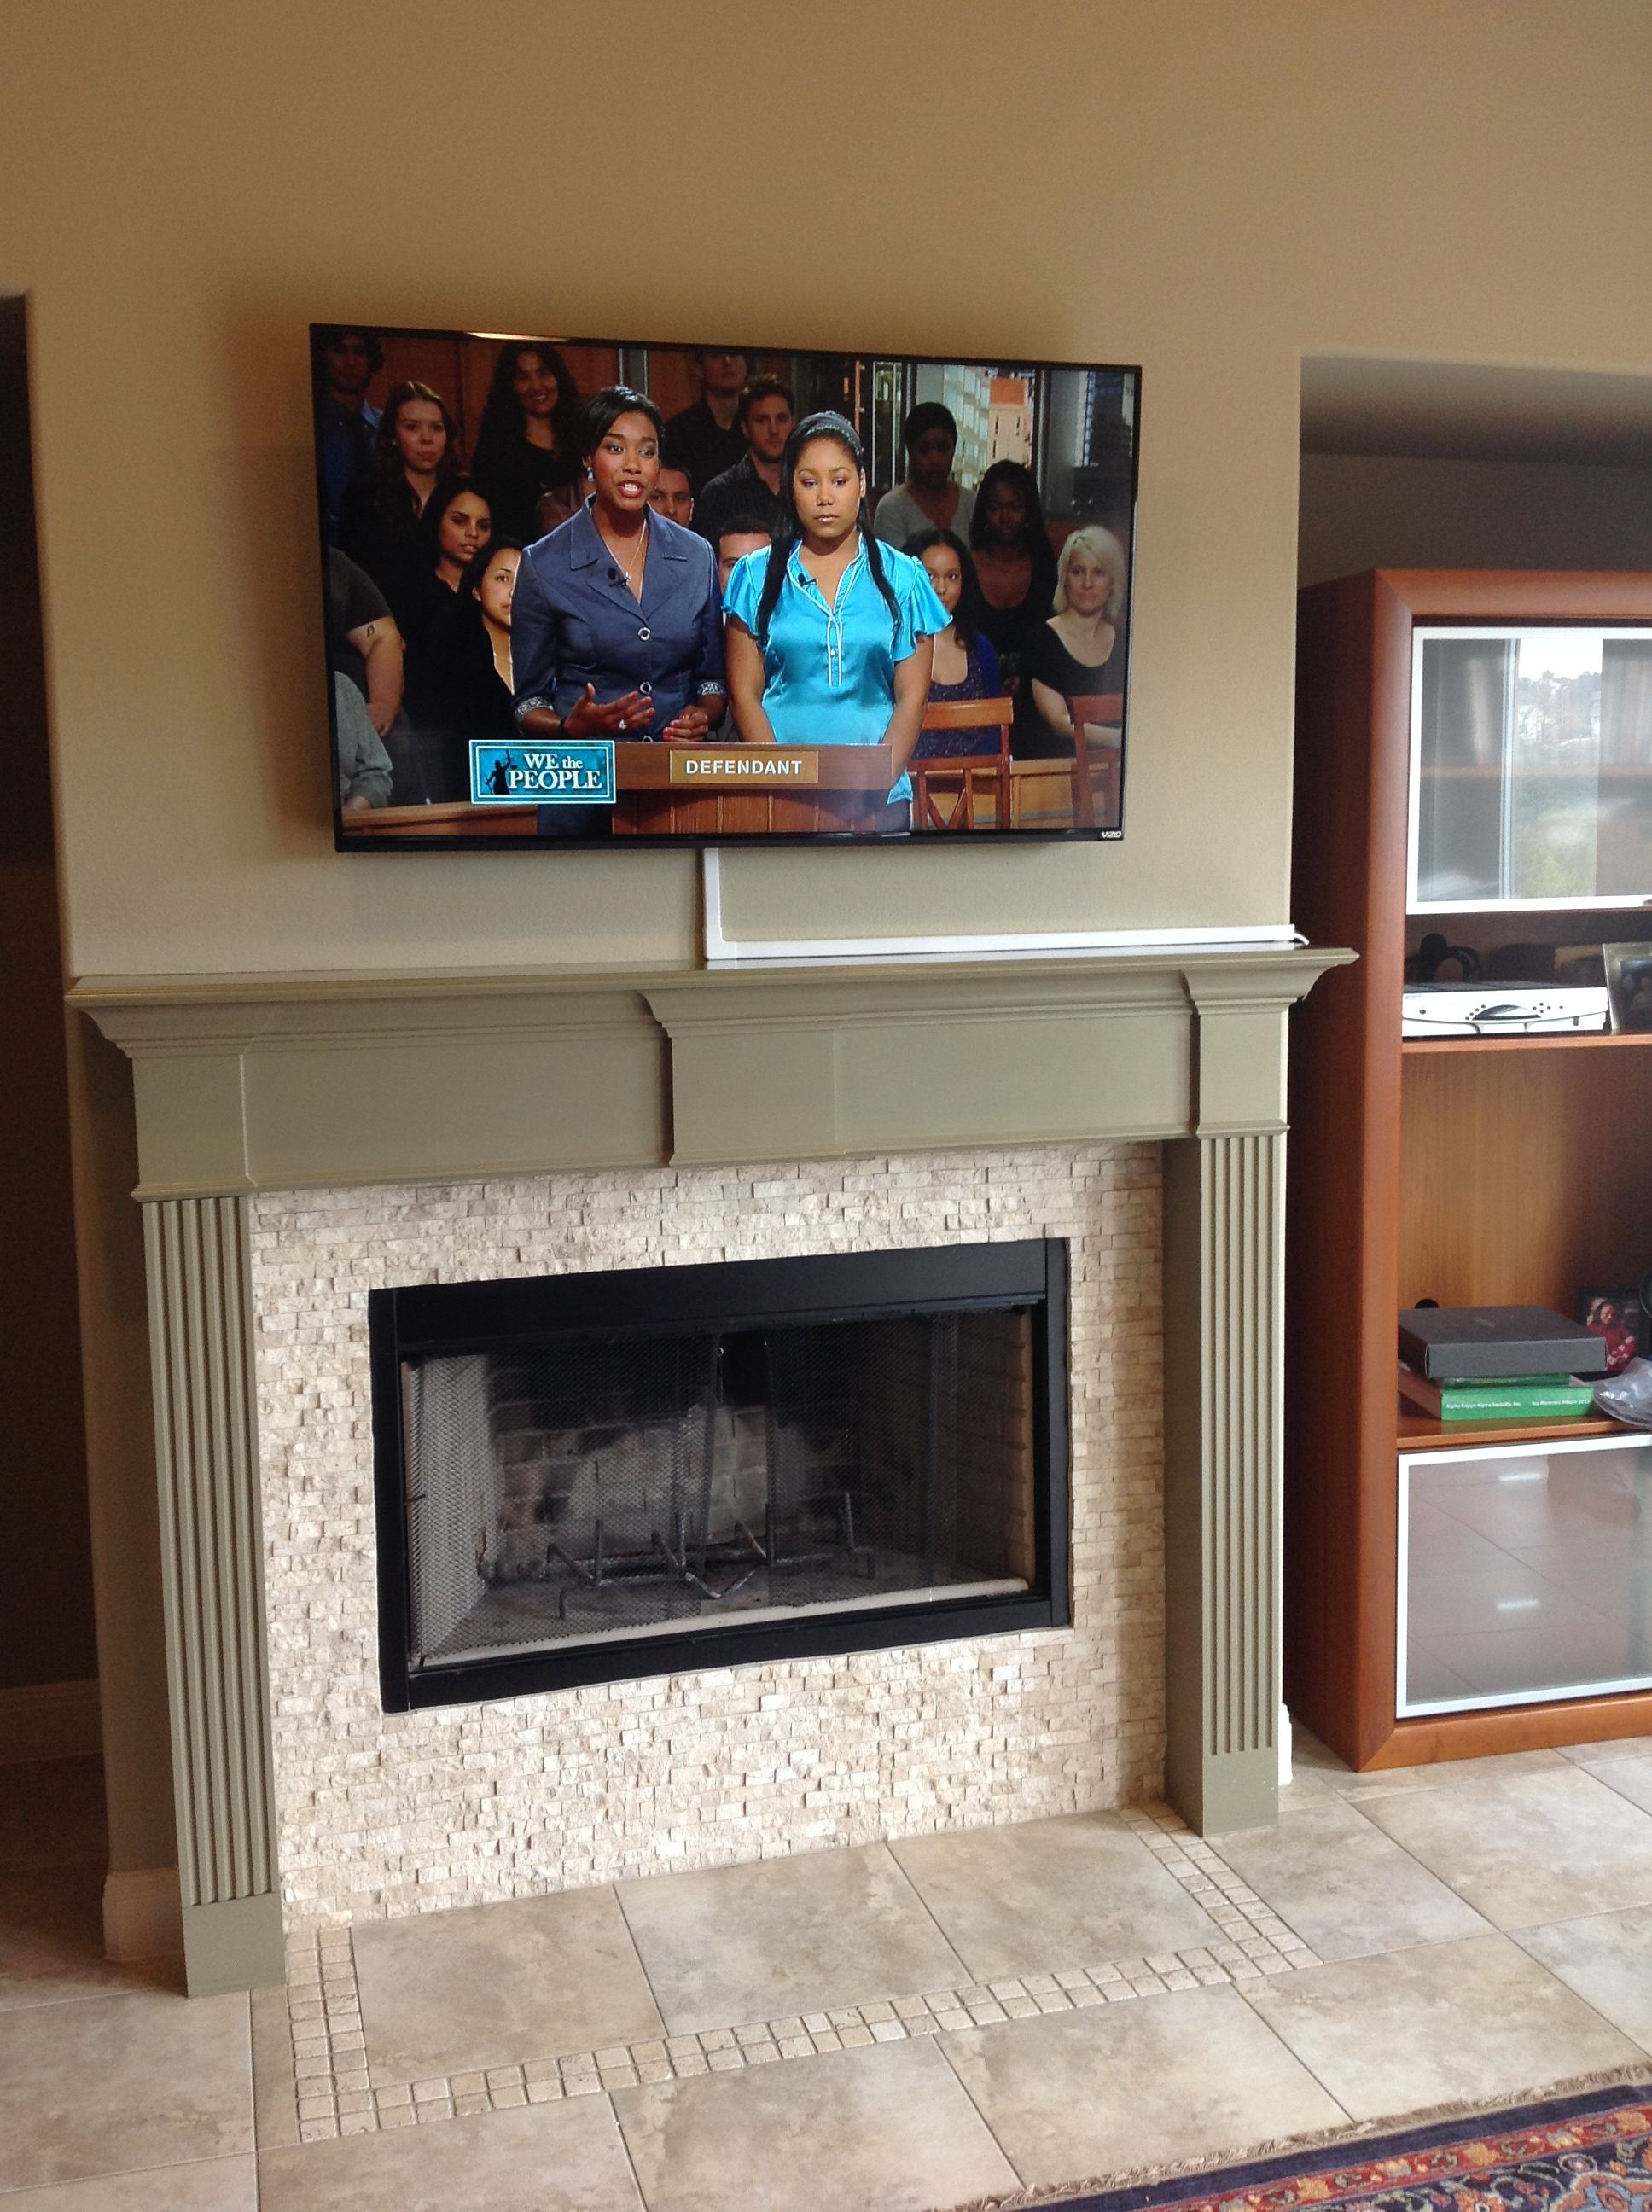 hight resolution of wiring tv above fireplace wiring diagram papertv mounting over a fireplace with wires concealed in wire